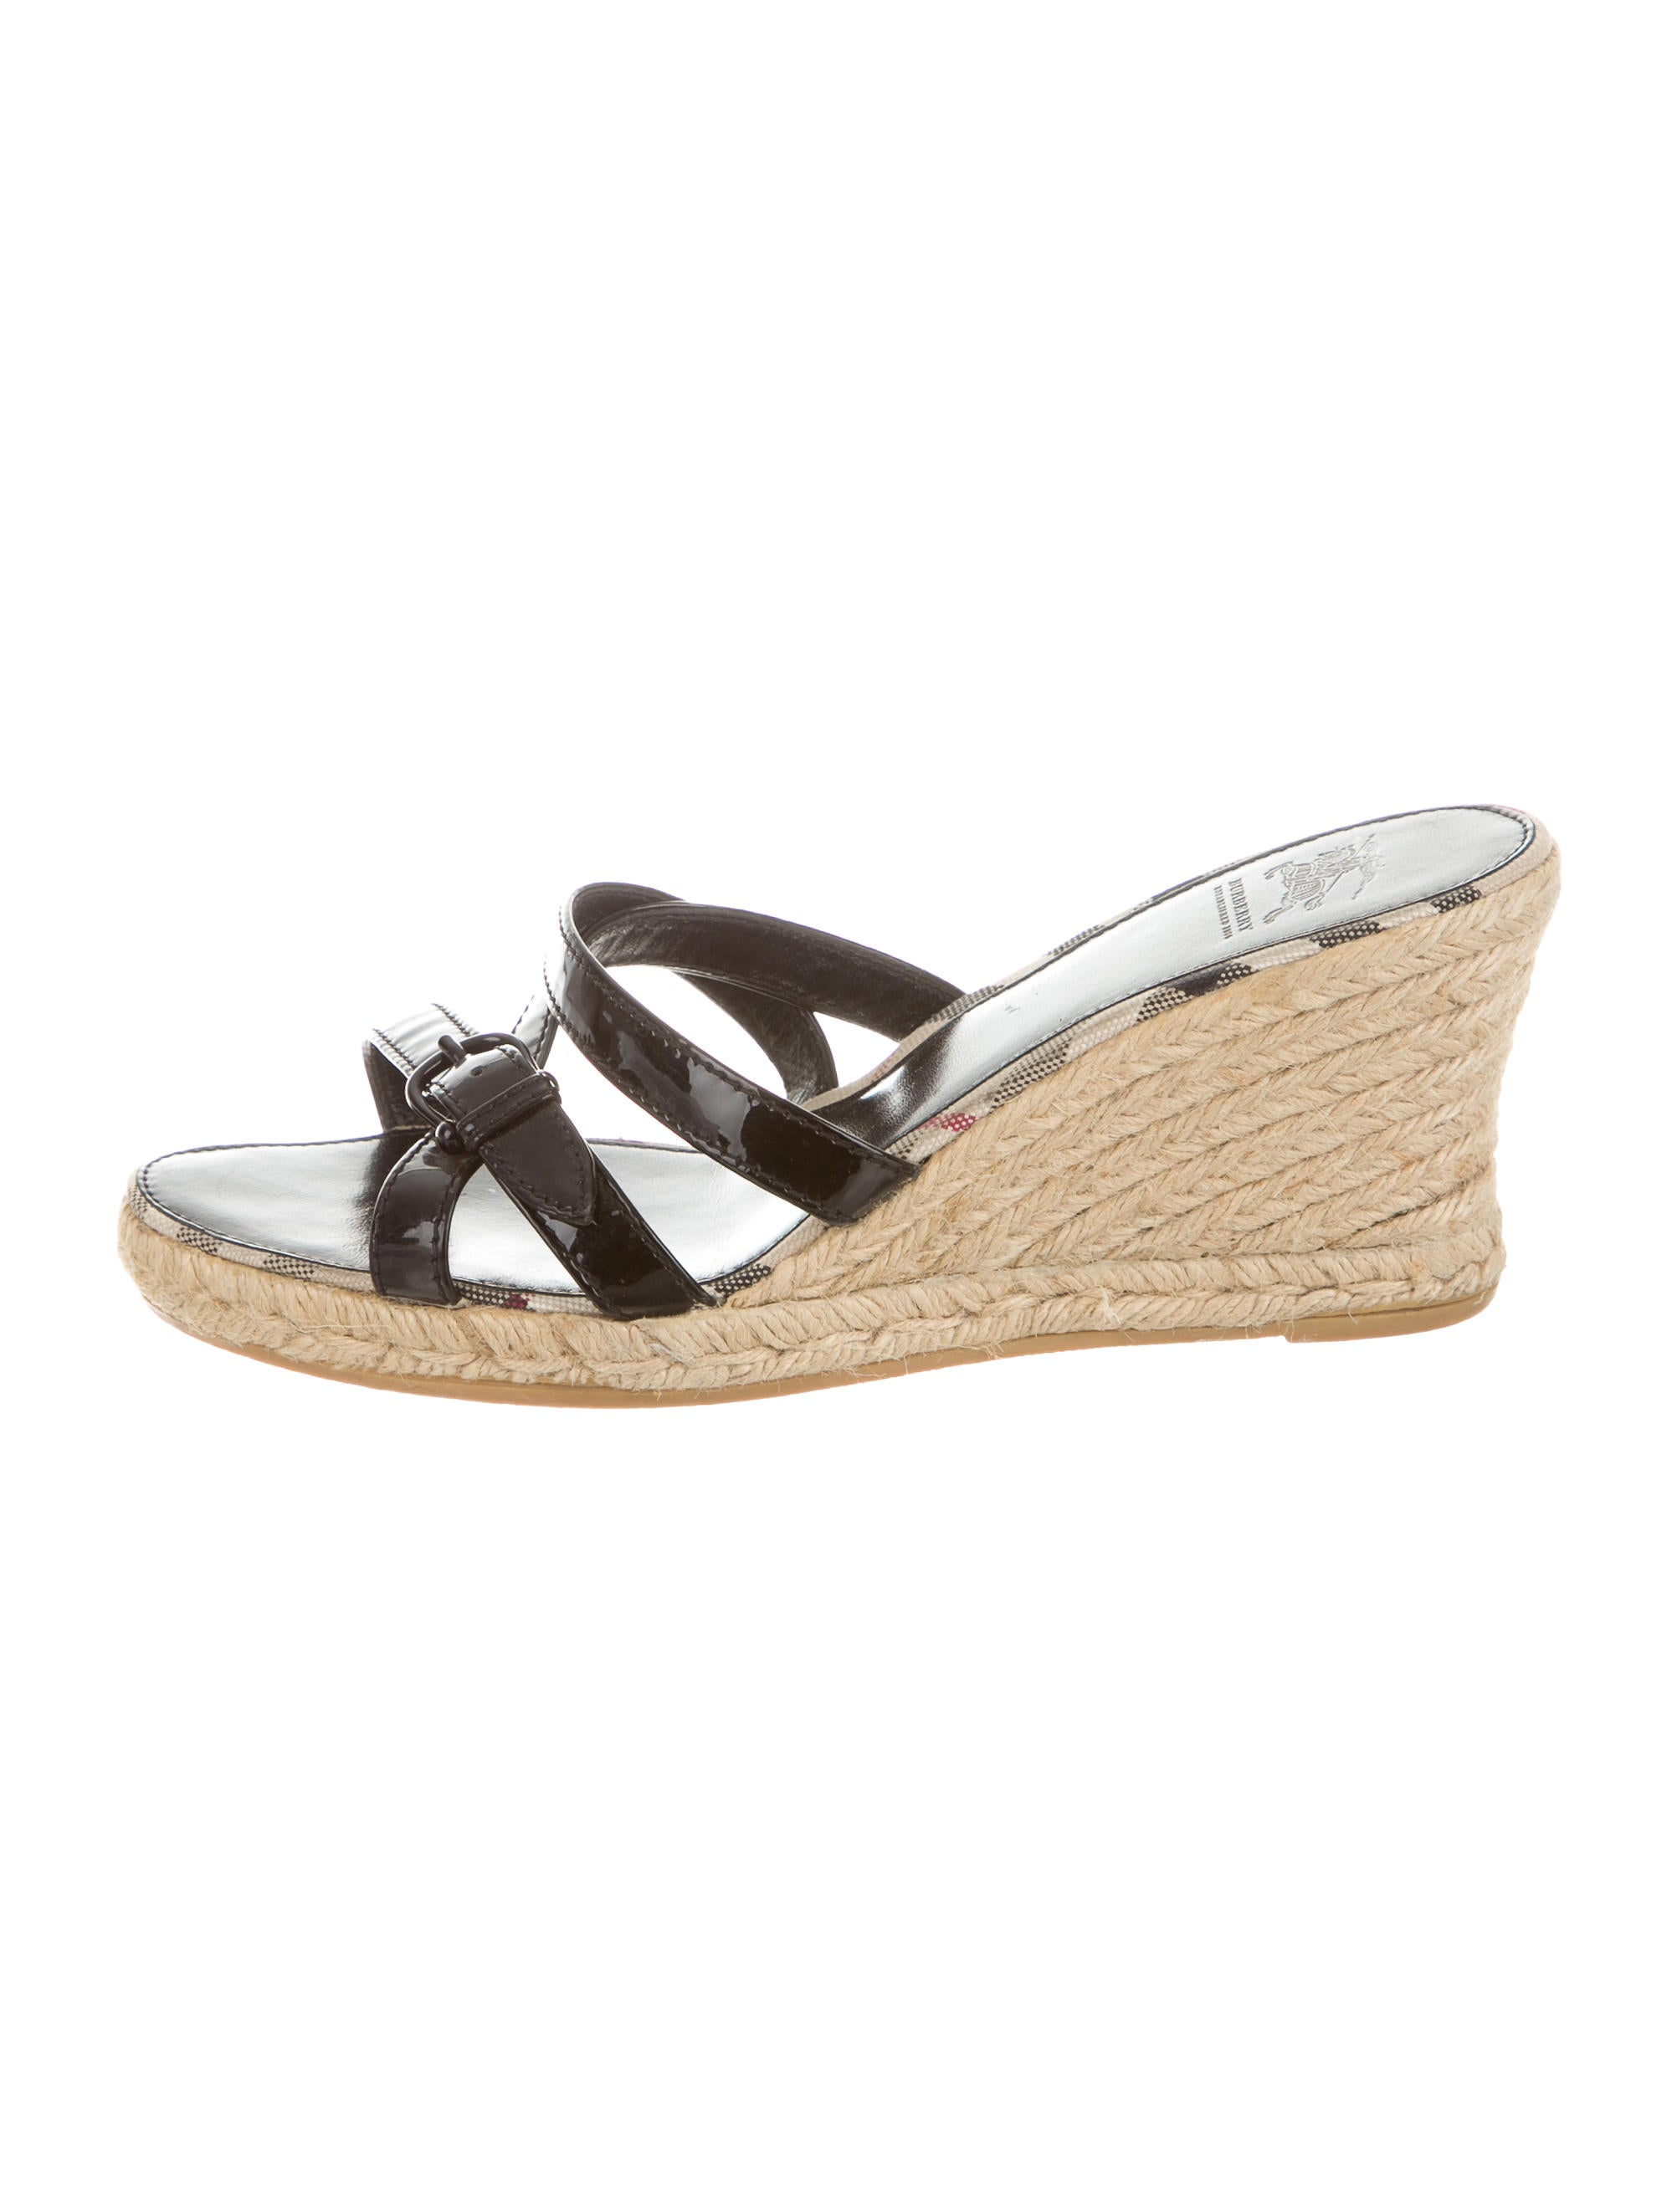 burberry patent leather wedge sandals shoes bur59832